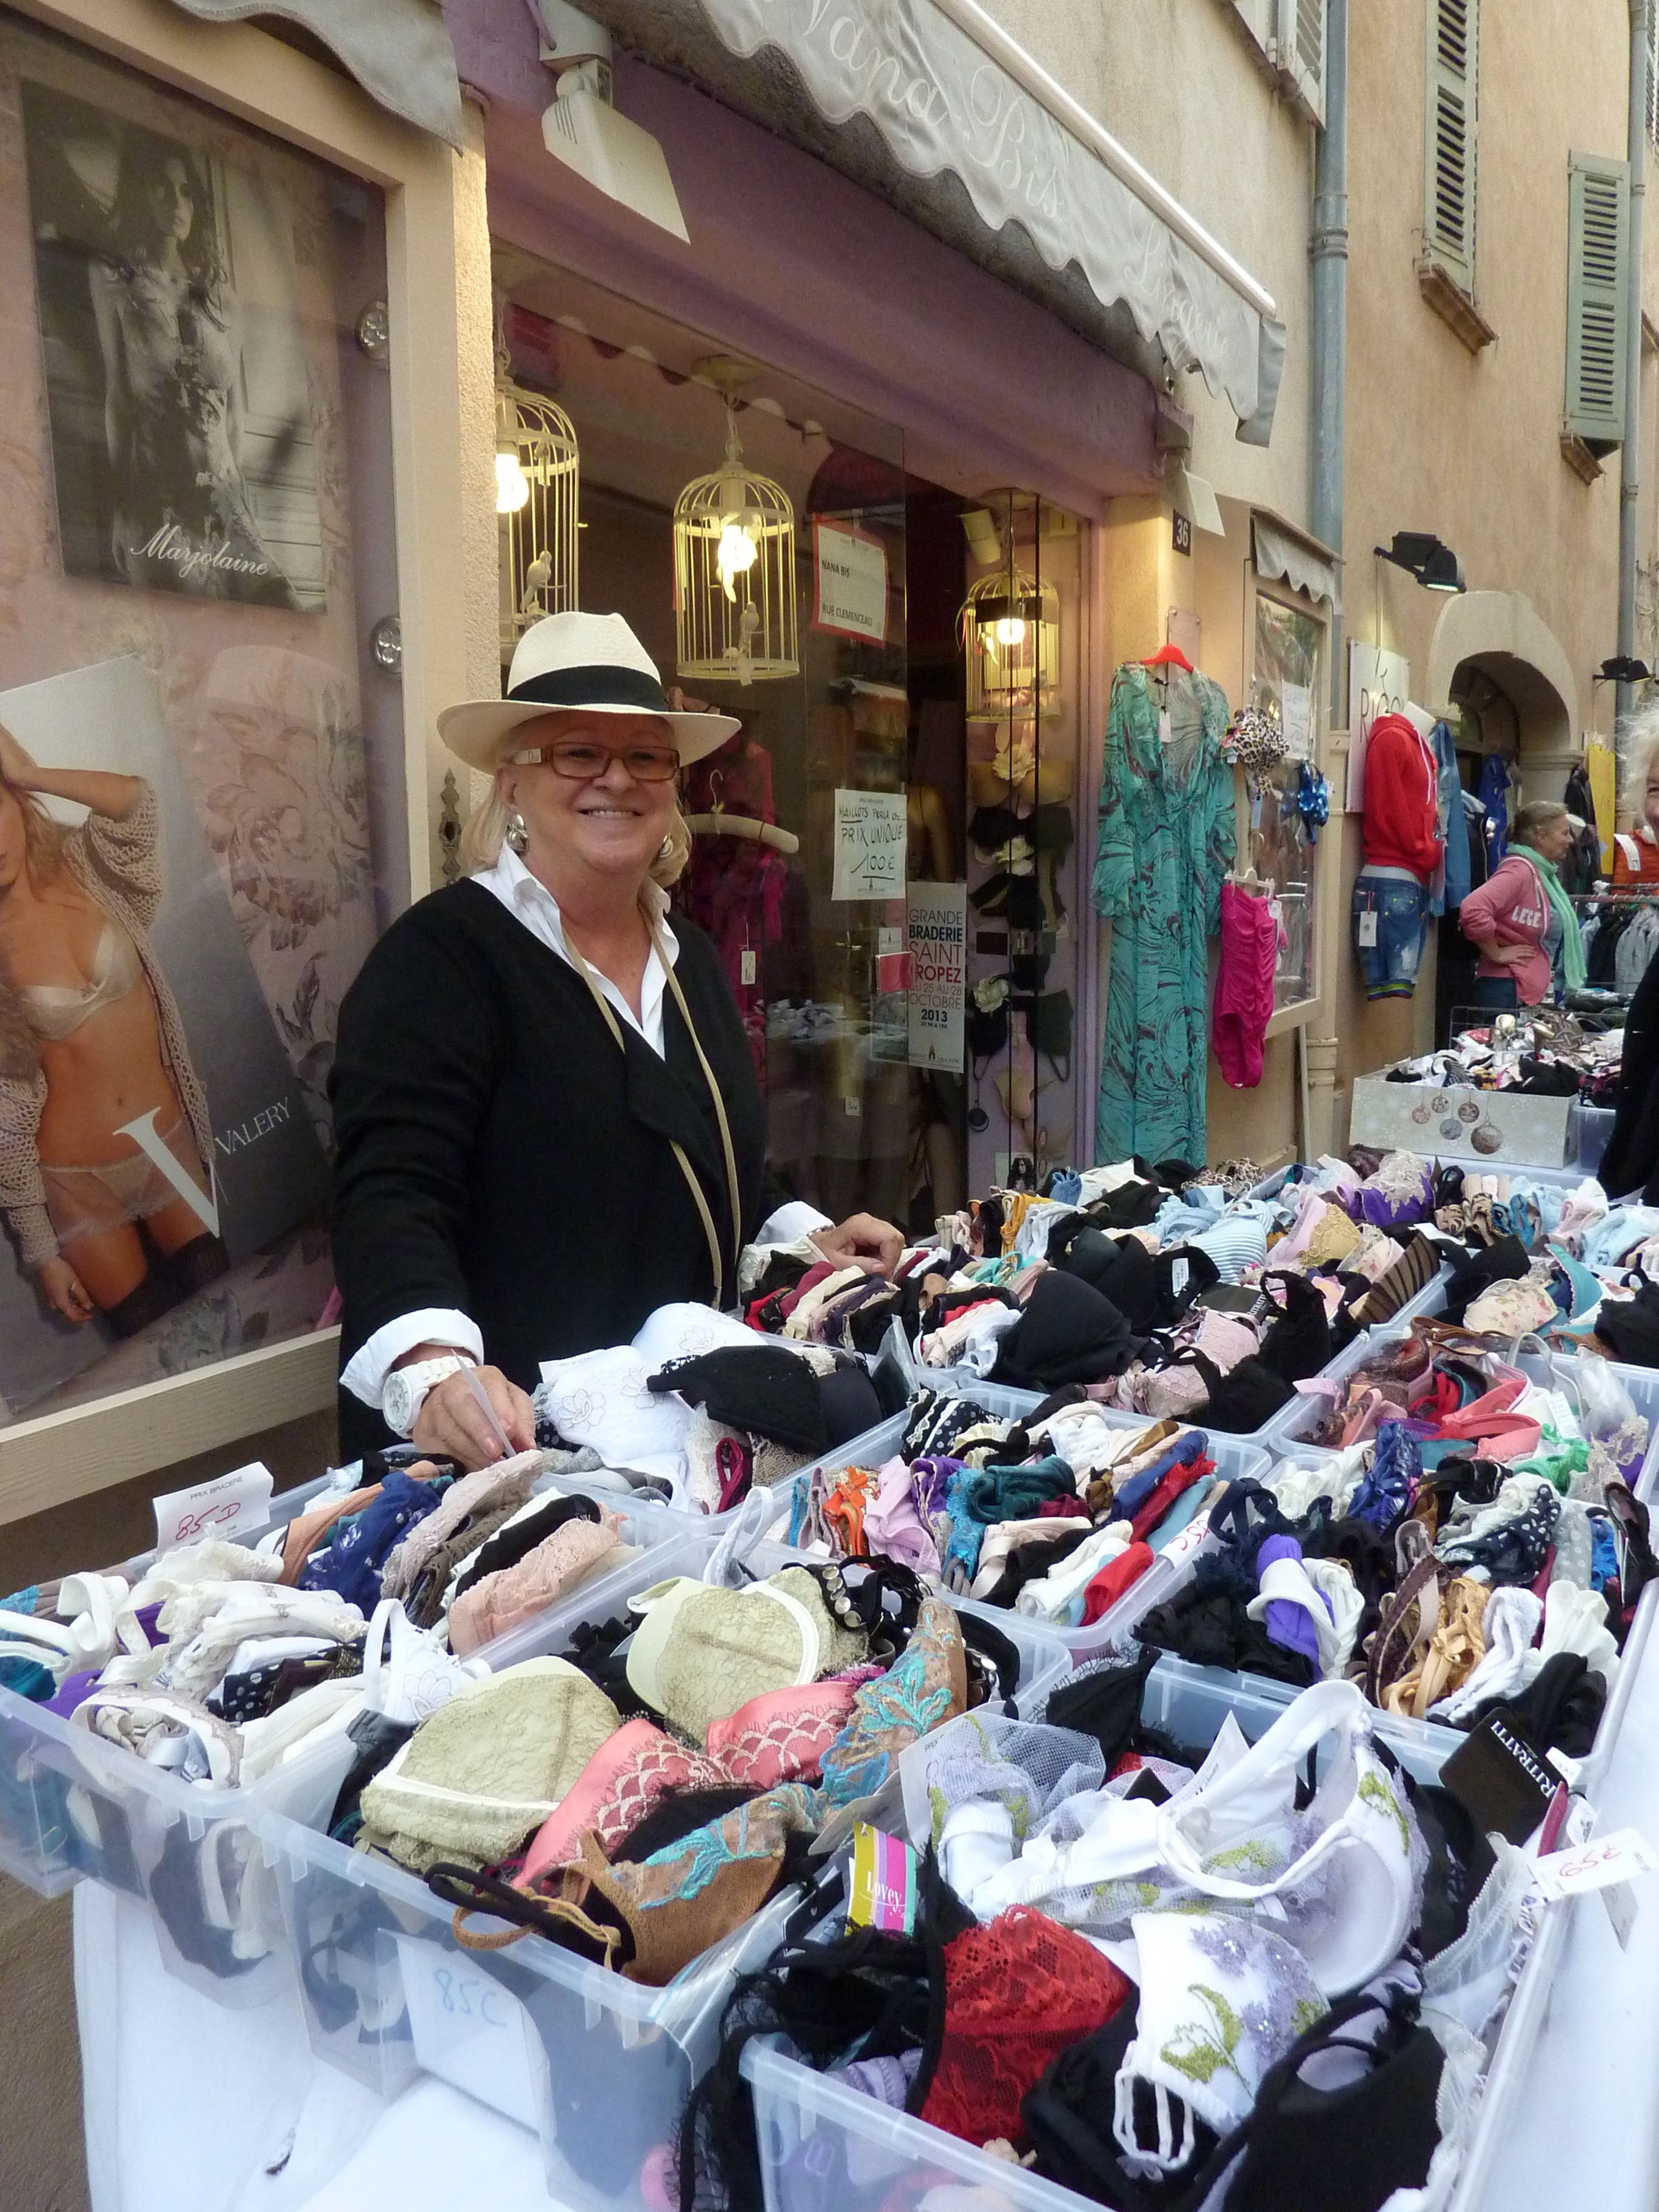 No shortage of bras for sale in St Tropez this autumn!